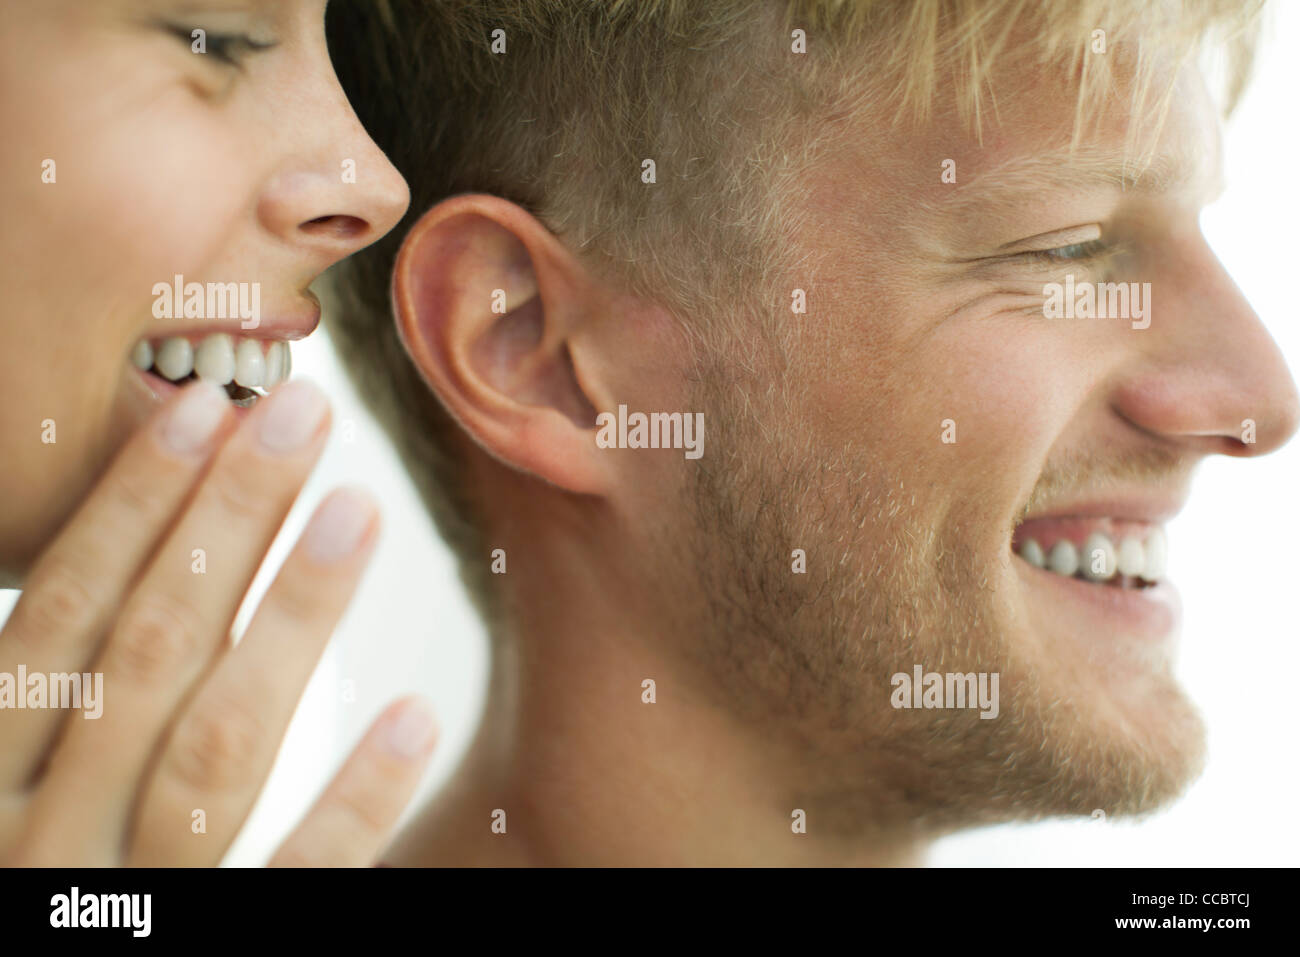 Woman Whispering in man's ear, close-up Photo Stock